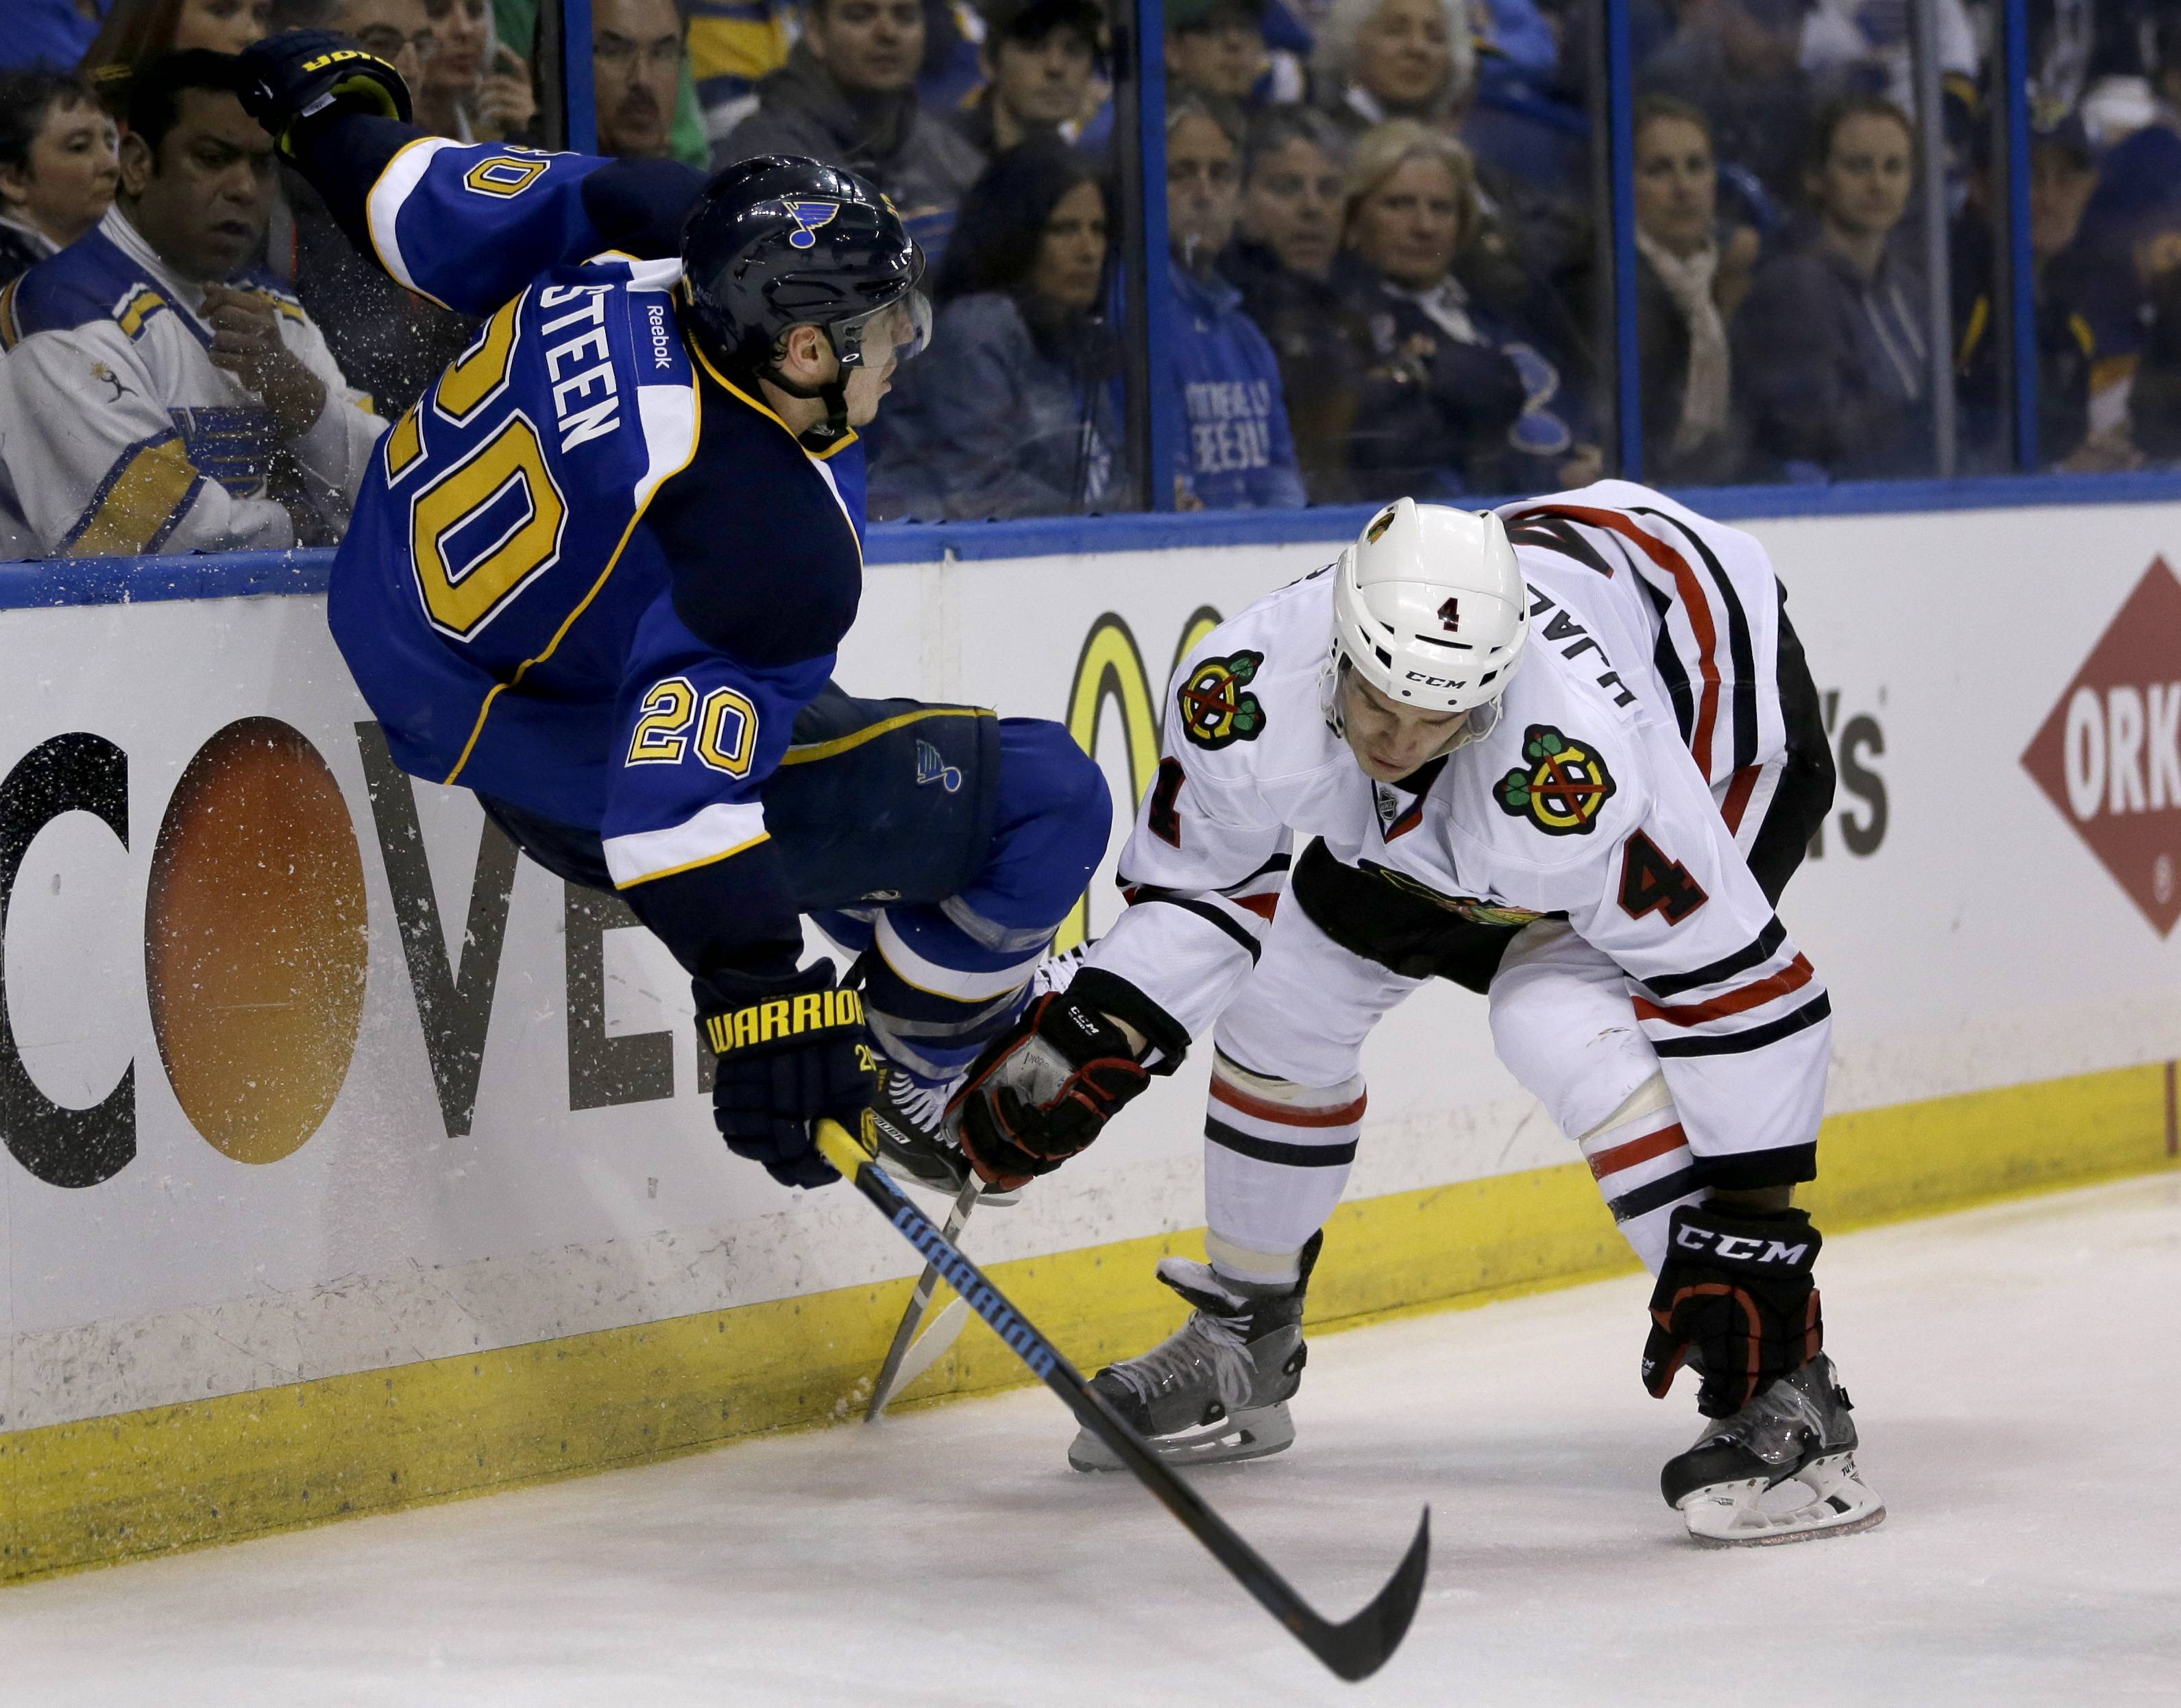 St. Louis Blues' Alexander Steen, left, is checked into the boards by Chicago Blackhawks' Niklas Hjalmarsson during the first overtime in Game 1 of a first-round NHL hockey Stanley Cup playoff series Thursday, April 17, 2014, in St. Louis.